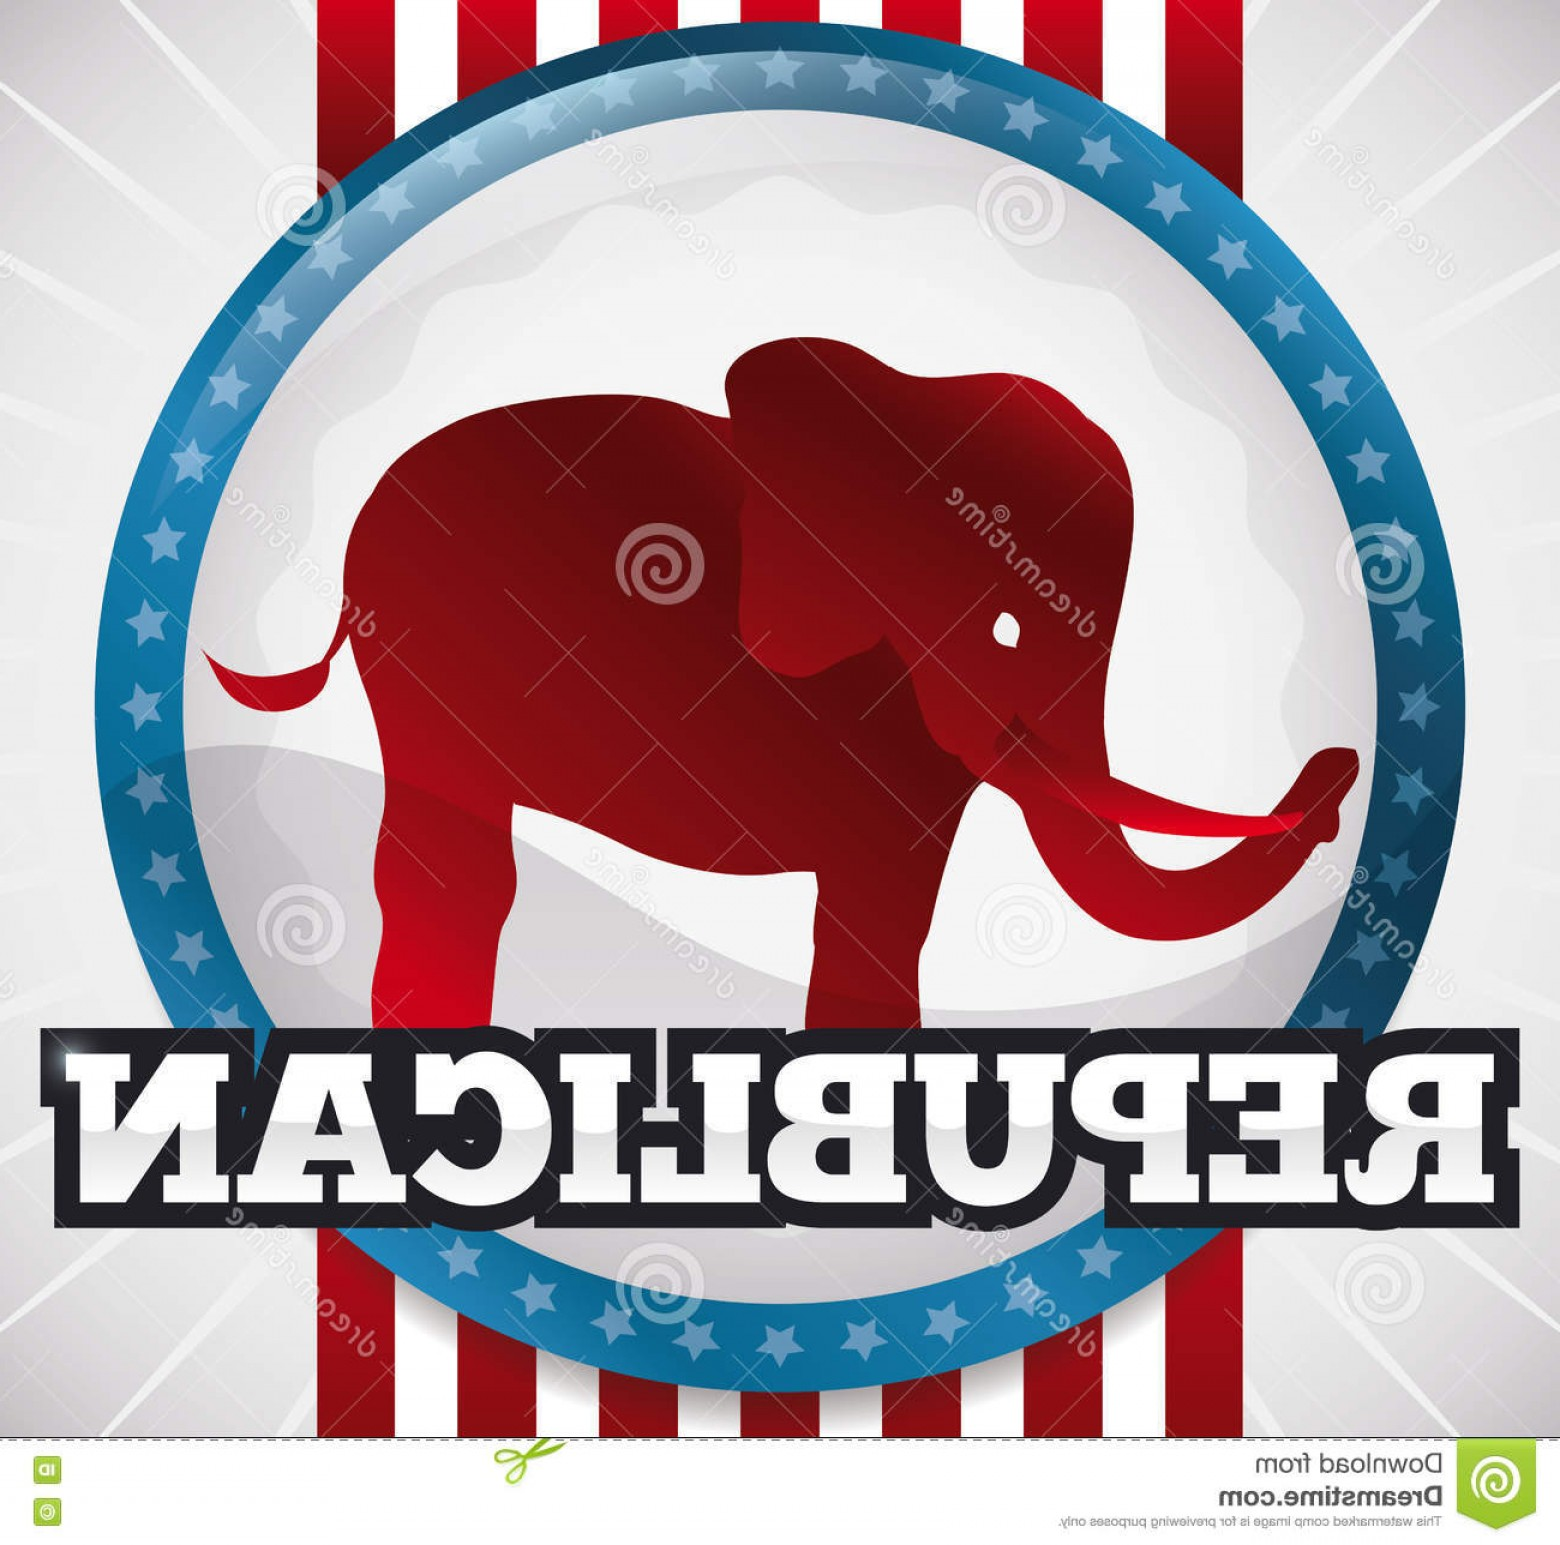 Republican Elephant Vector: Stock Illustration American Round Button Design Republican Elephant Vector Illustration Glossy Red Inside Supporting Vote Next Image